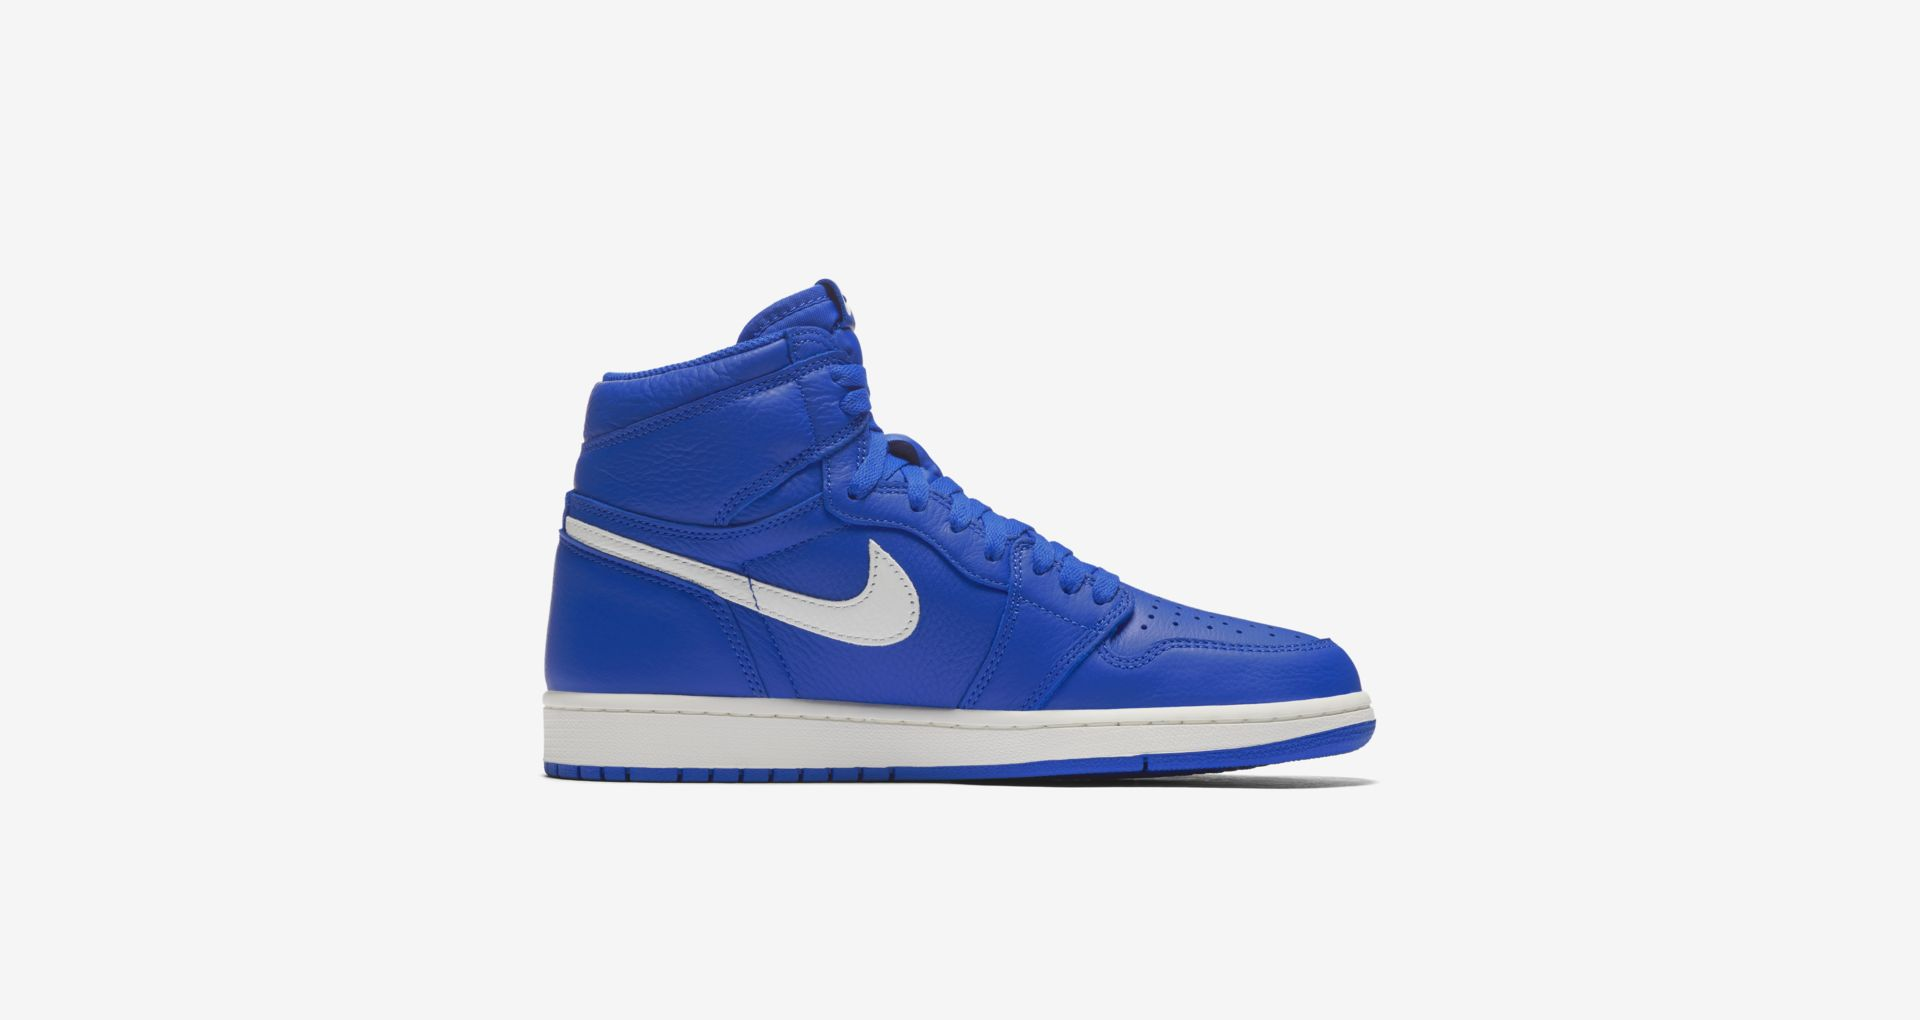 555088 401 Air Jordan 1 Hyper Royal 4